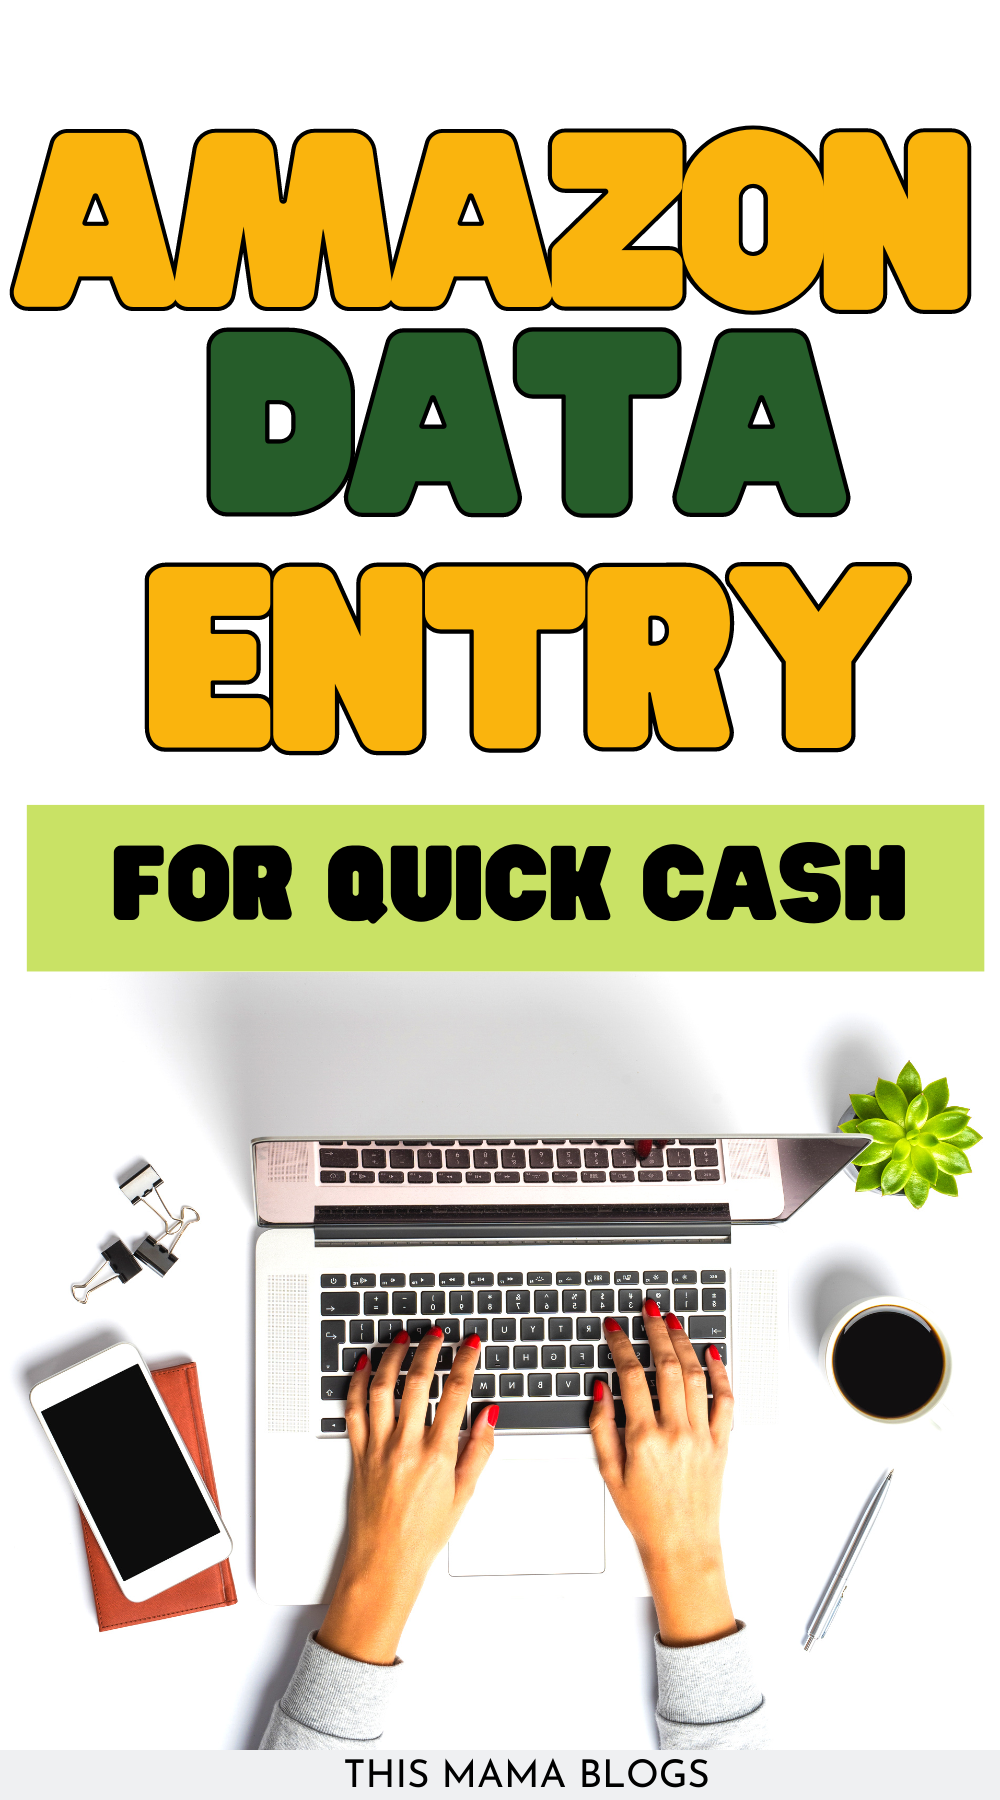 Amazon Data Entry Jobs That Pay Quick Cash